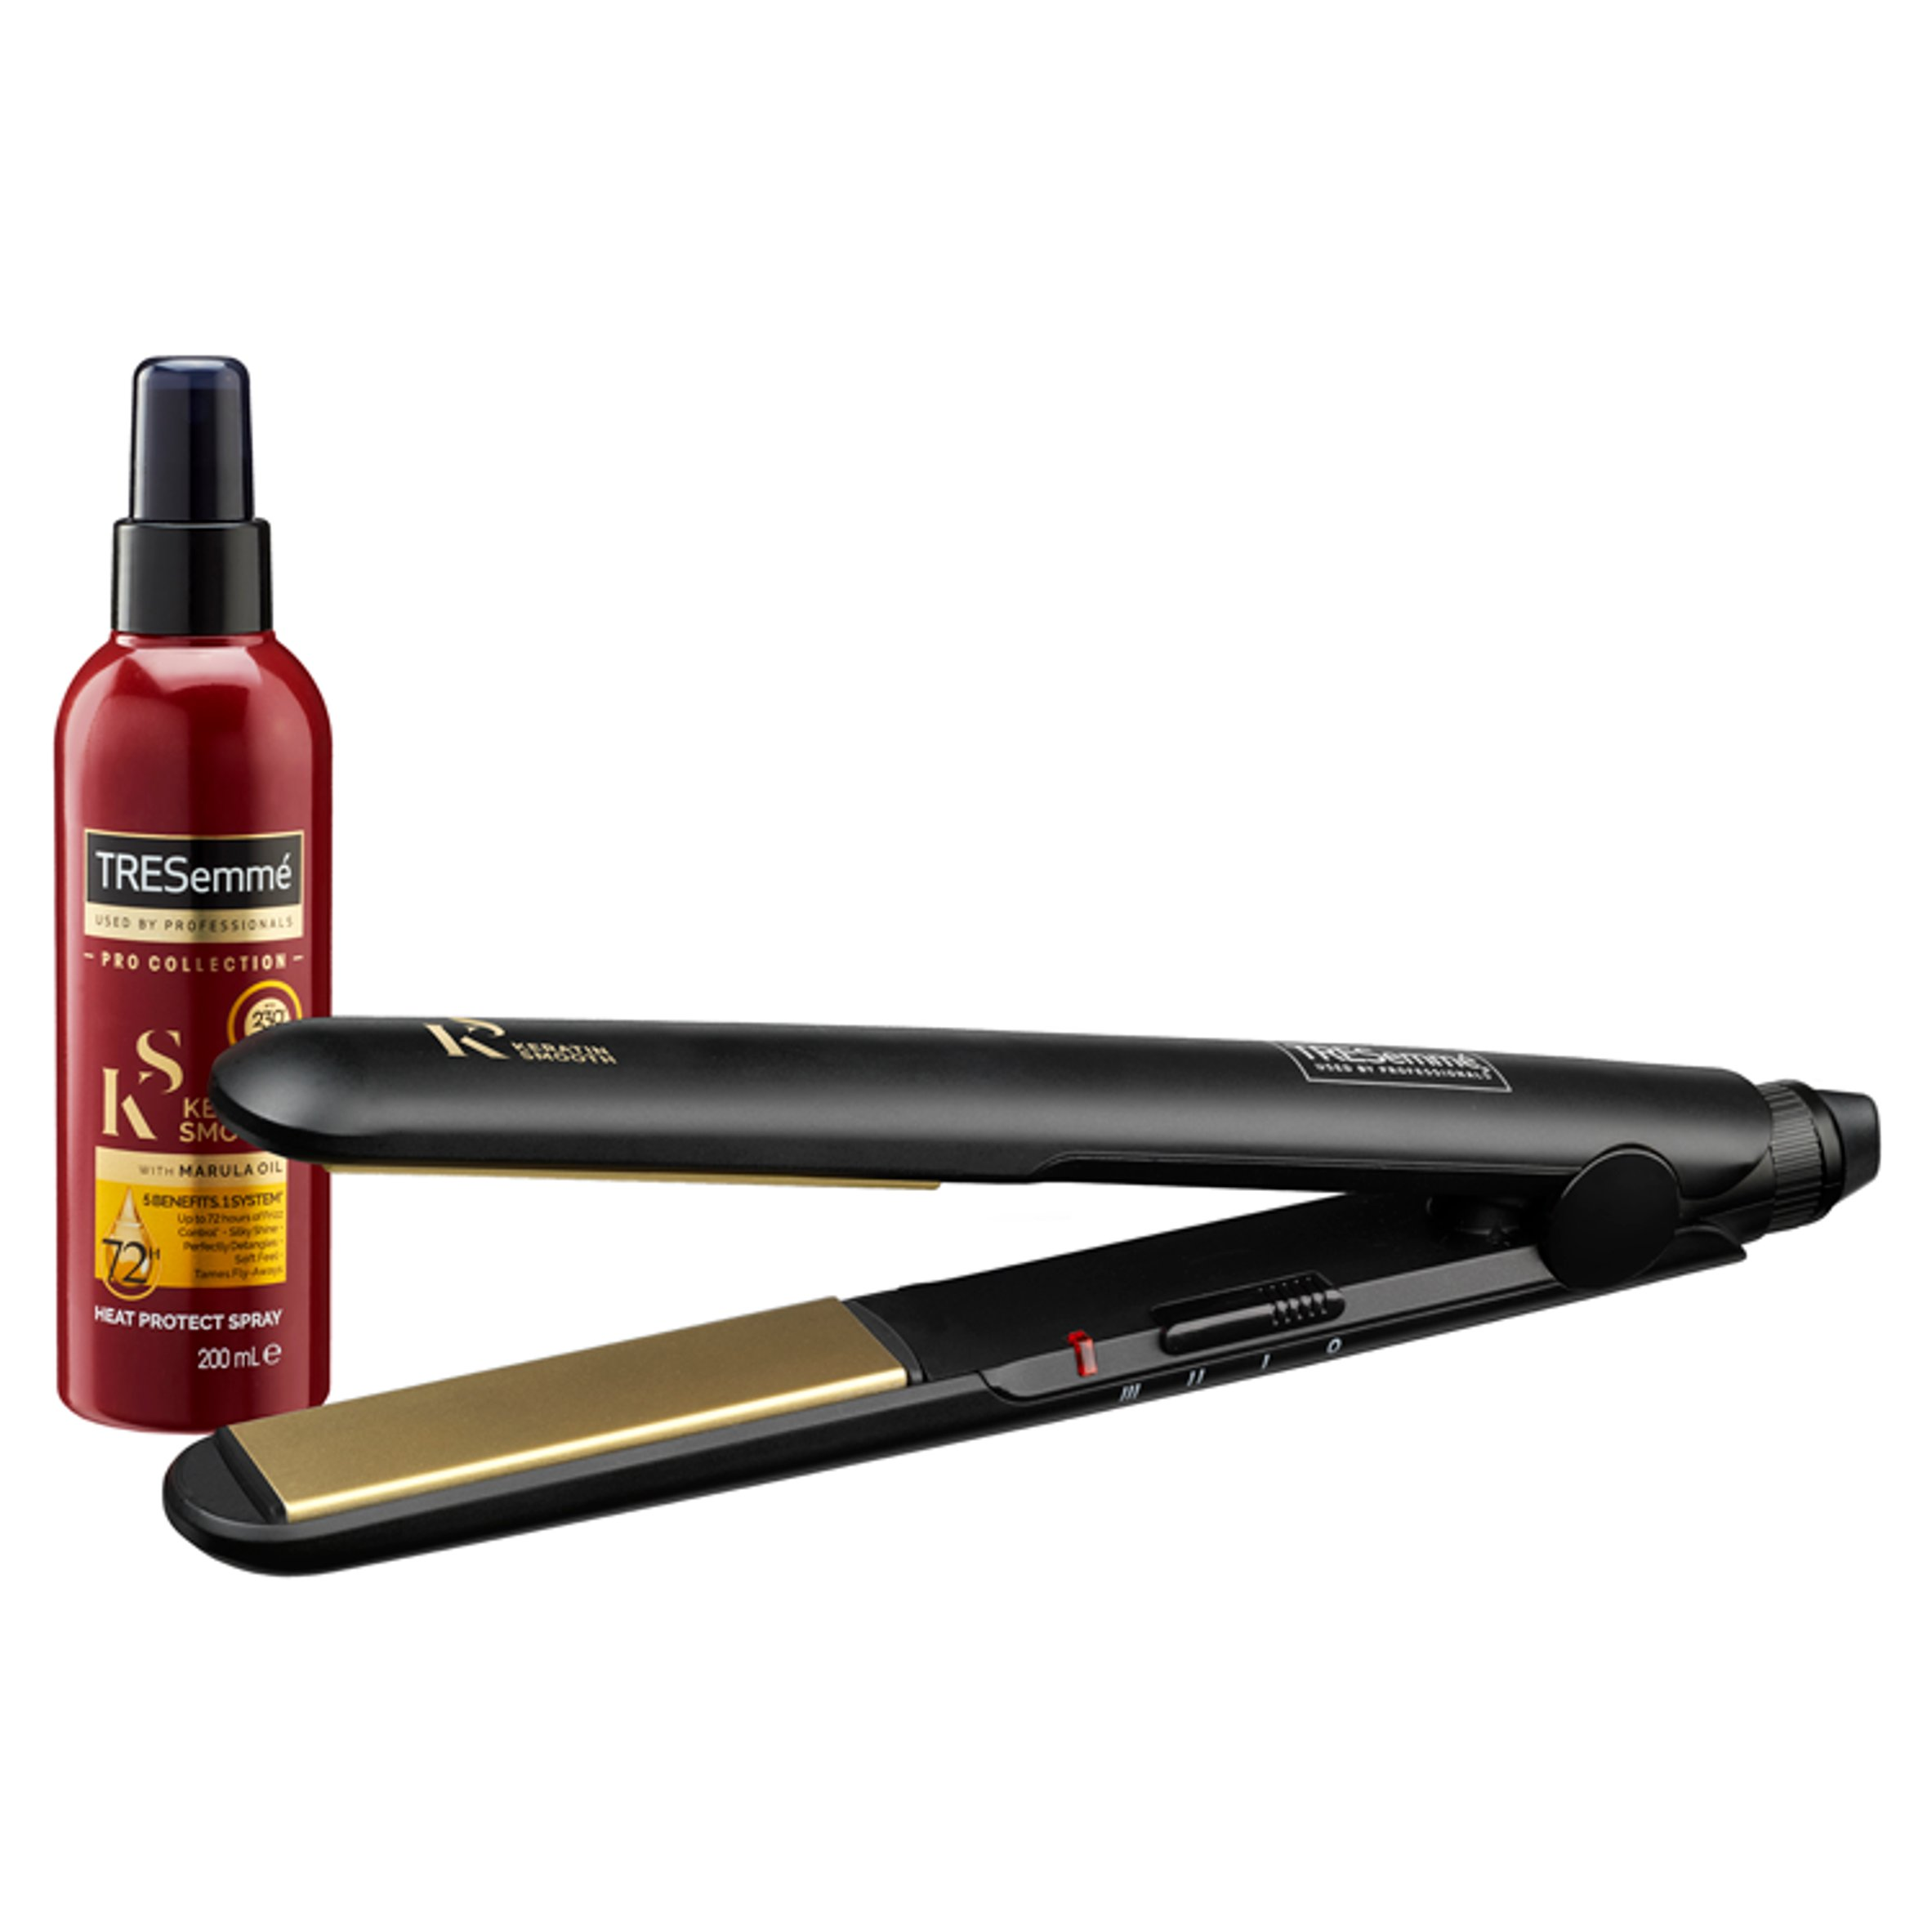 Tresemme Keratin Smooth With Marula Oil Straightener